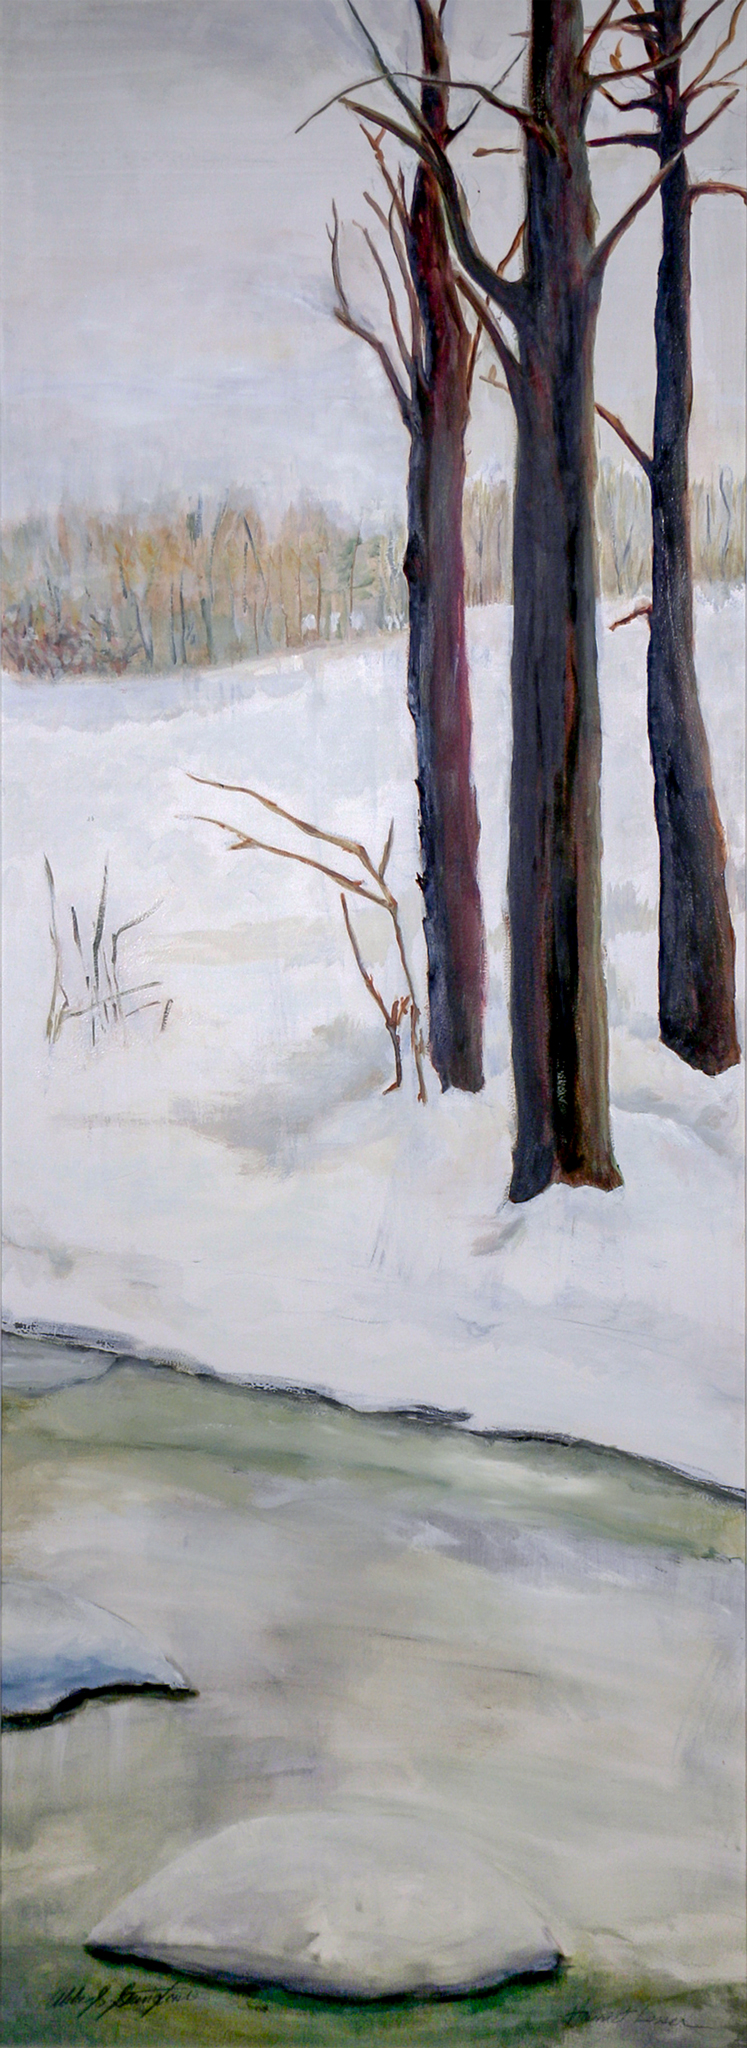 Snow IV  (one of a six-panel screen) oil/paper/wood